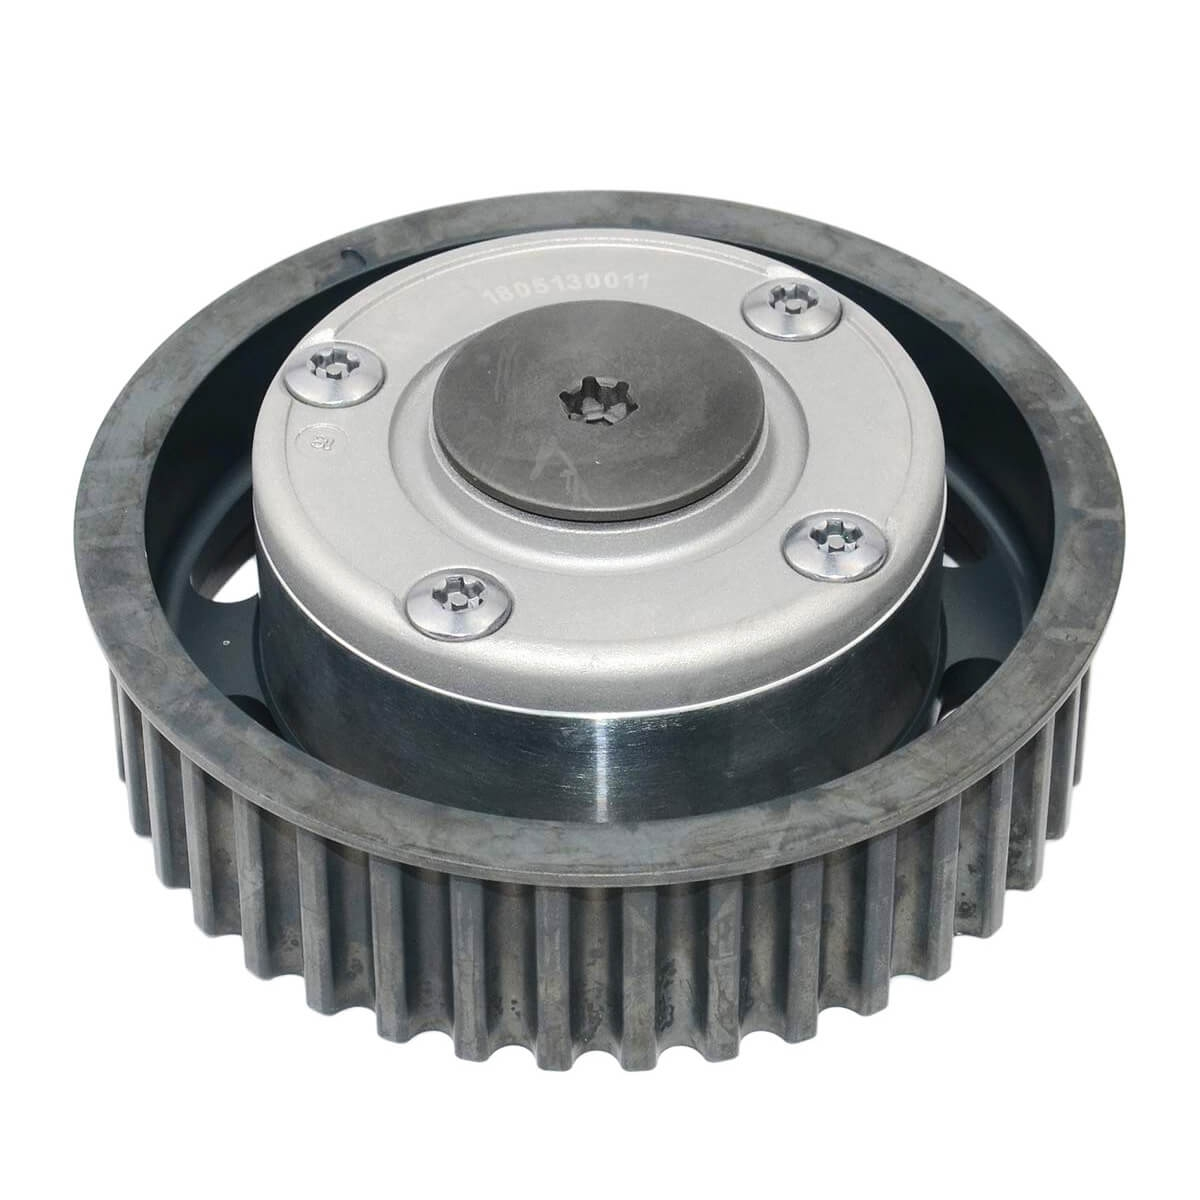 FIAT 500X Cam Dephaser Pulley